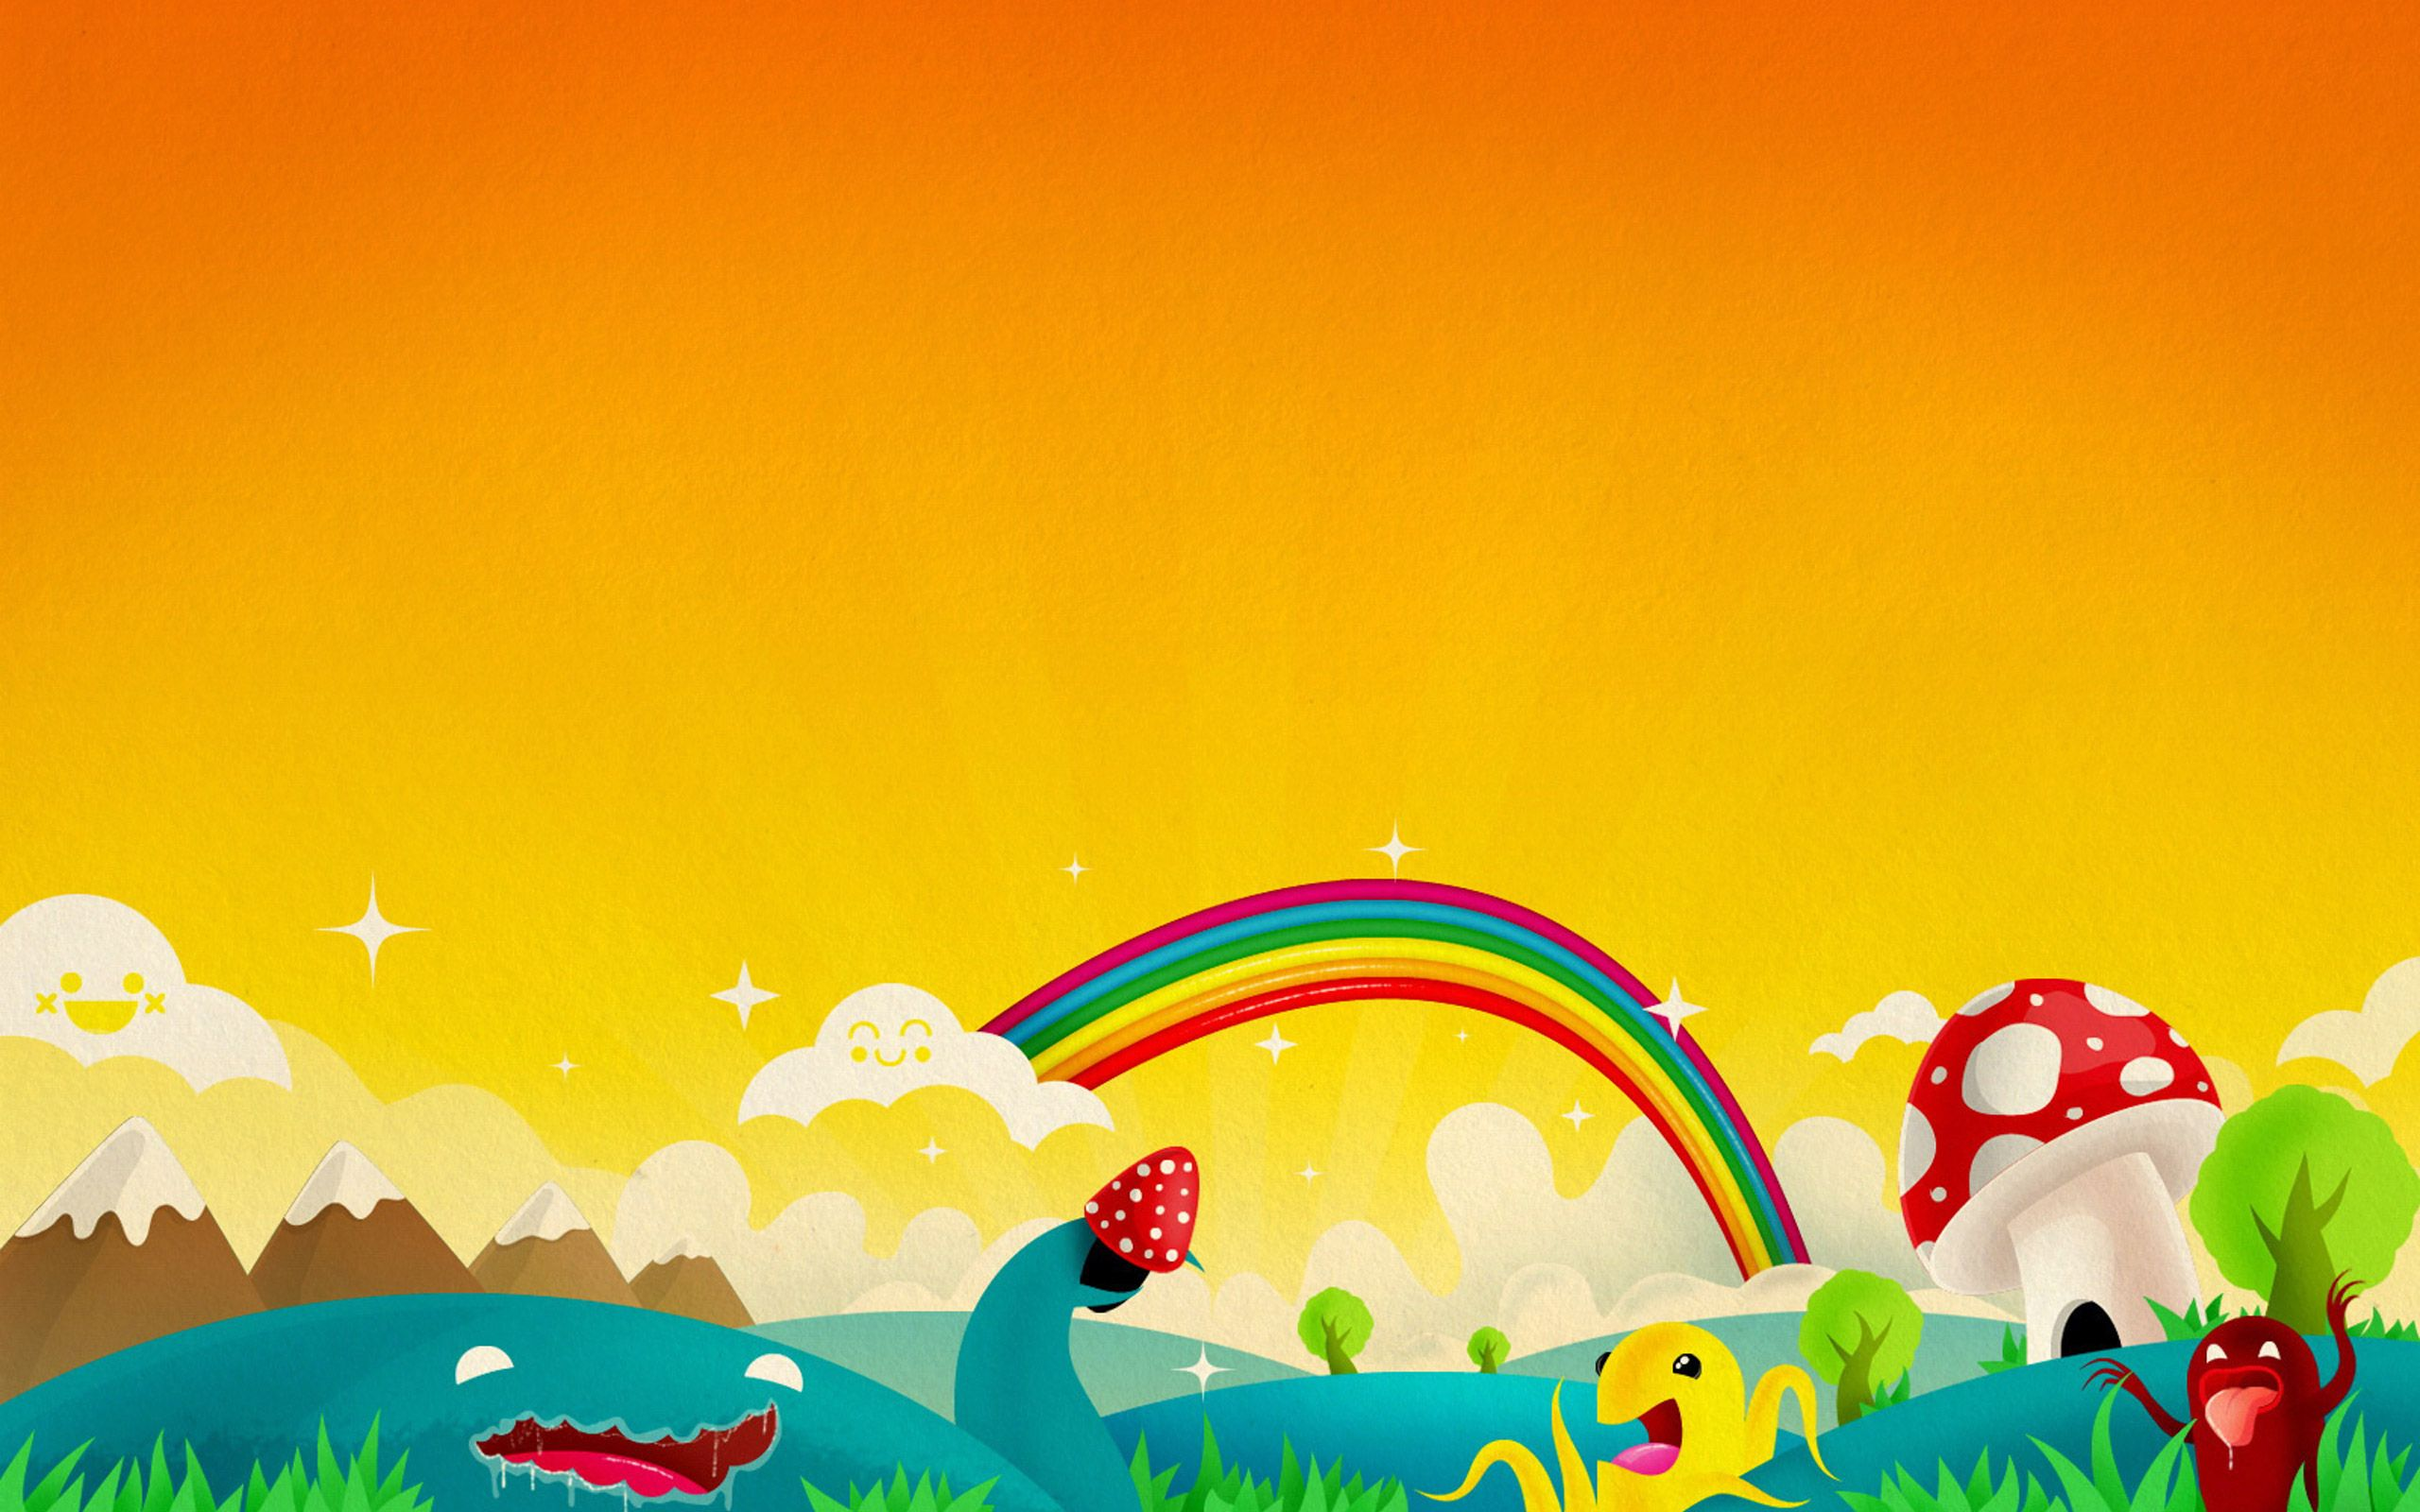 Rainbow Orange Background Kids Wallpaper Kids Design Rainbow Wallpaper